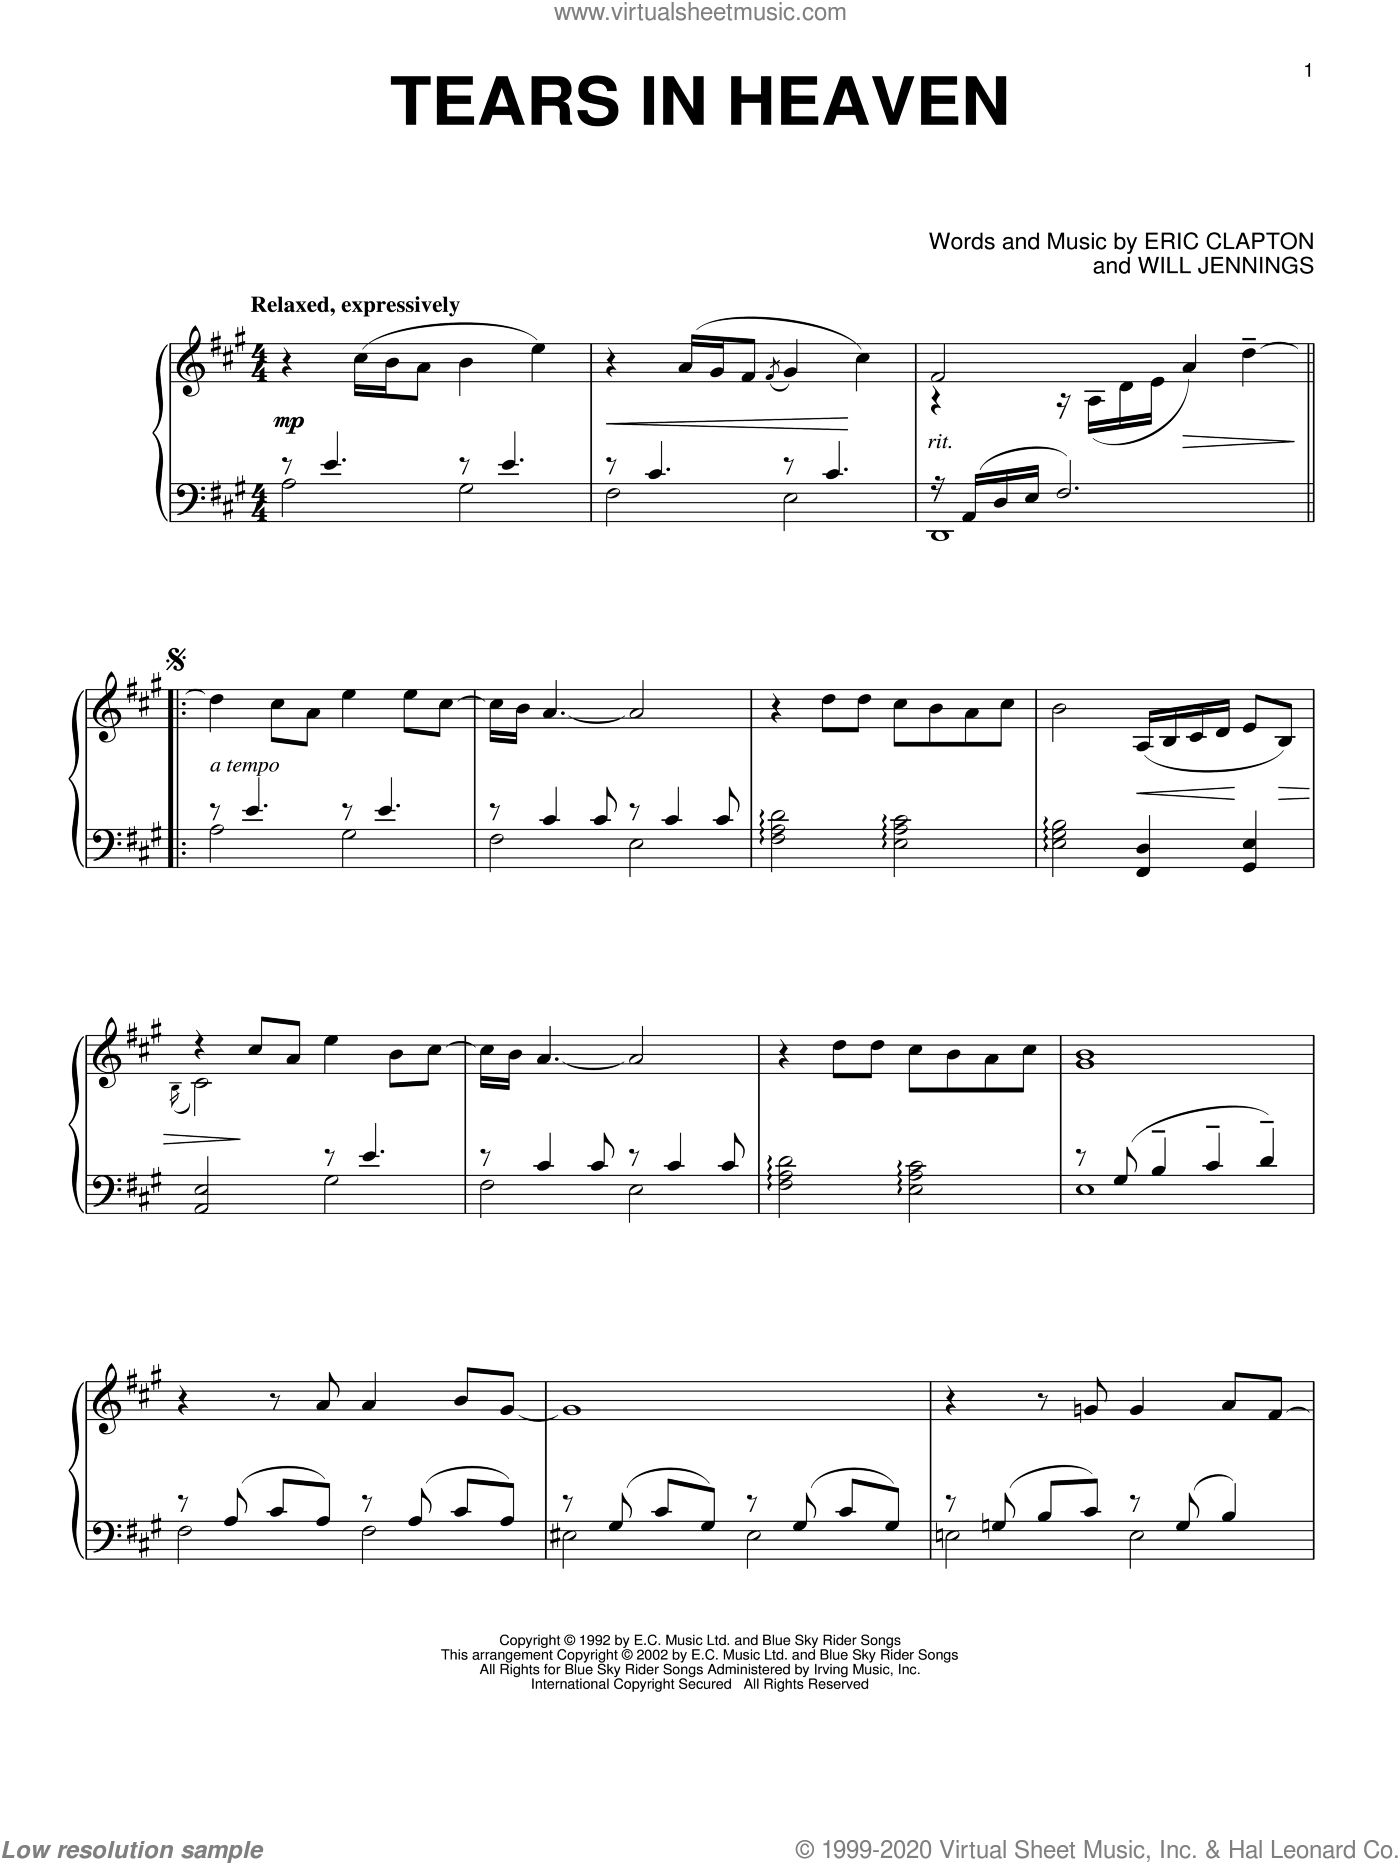 Tears In Heaven sheet music for piano solo by Will Jennings